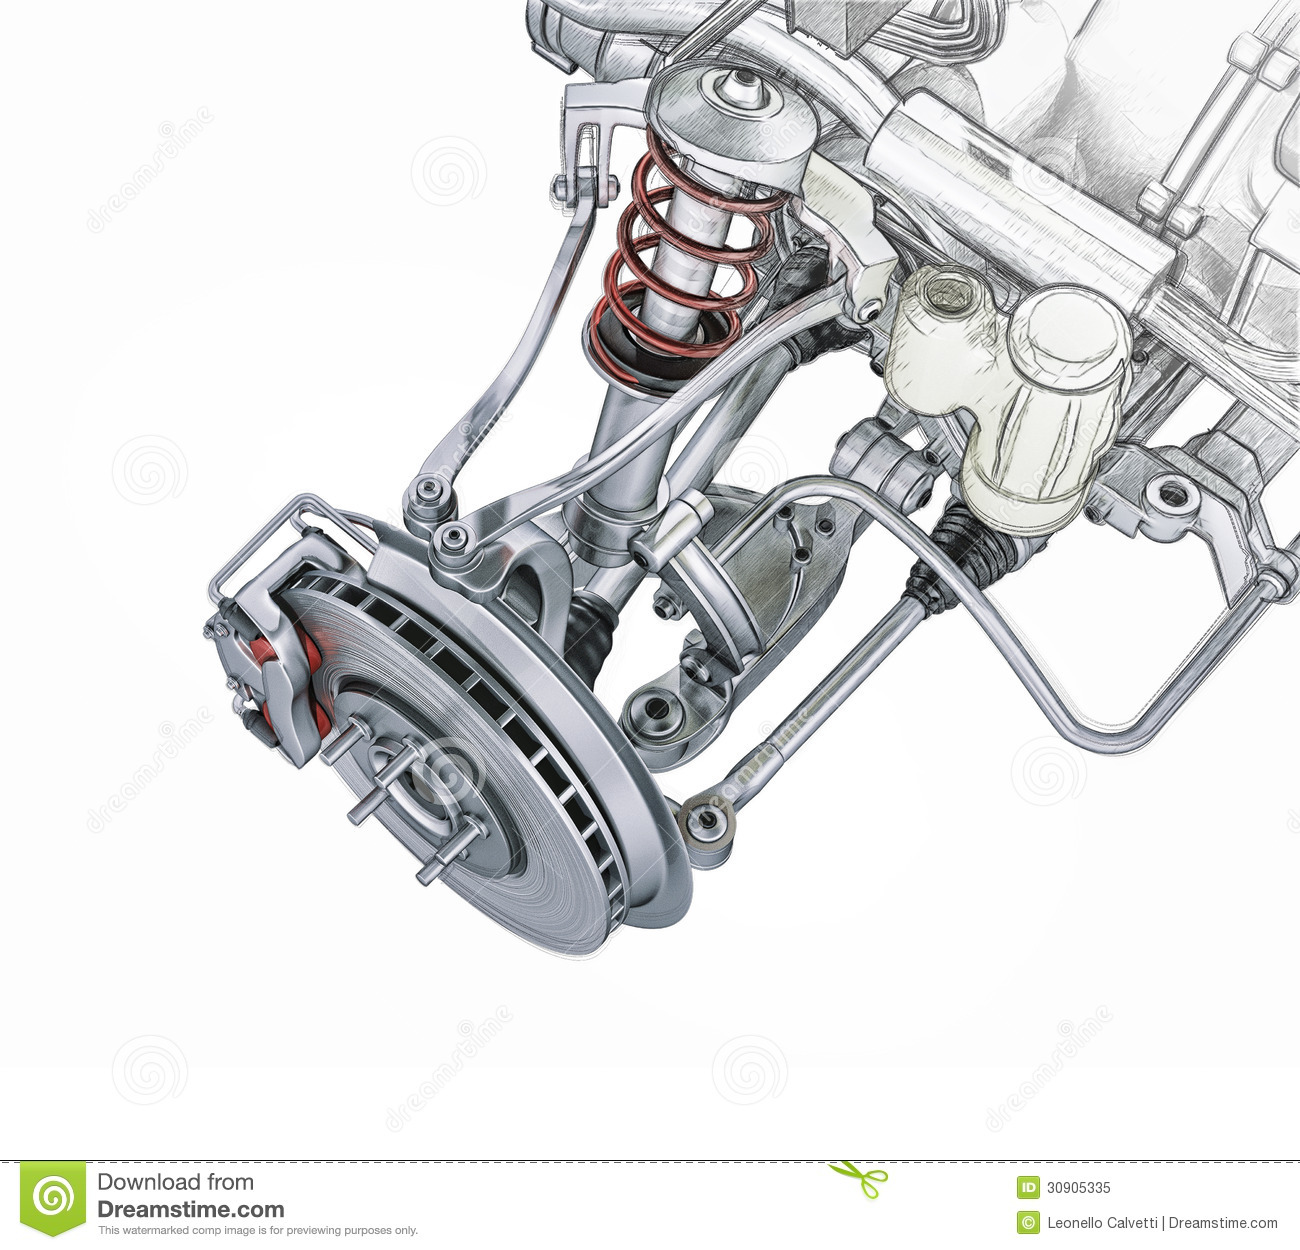 46 Best Images About Truck Suspension On Pinterest: Multi Link Front Car Suspension, With Brake. Stock